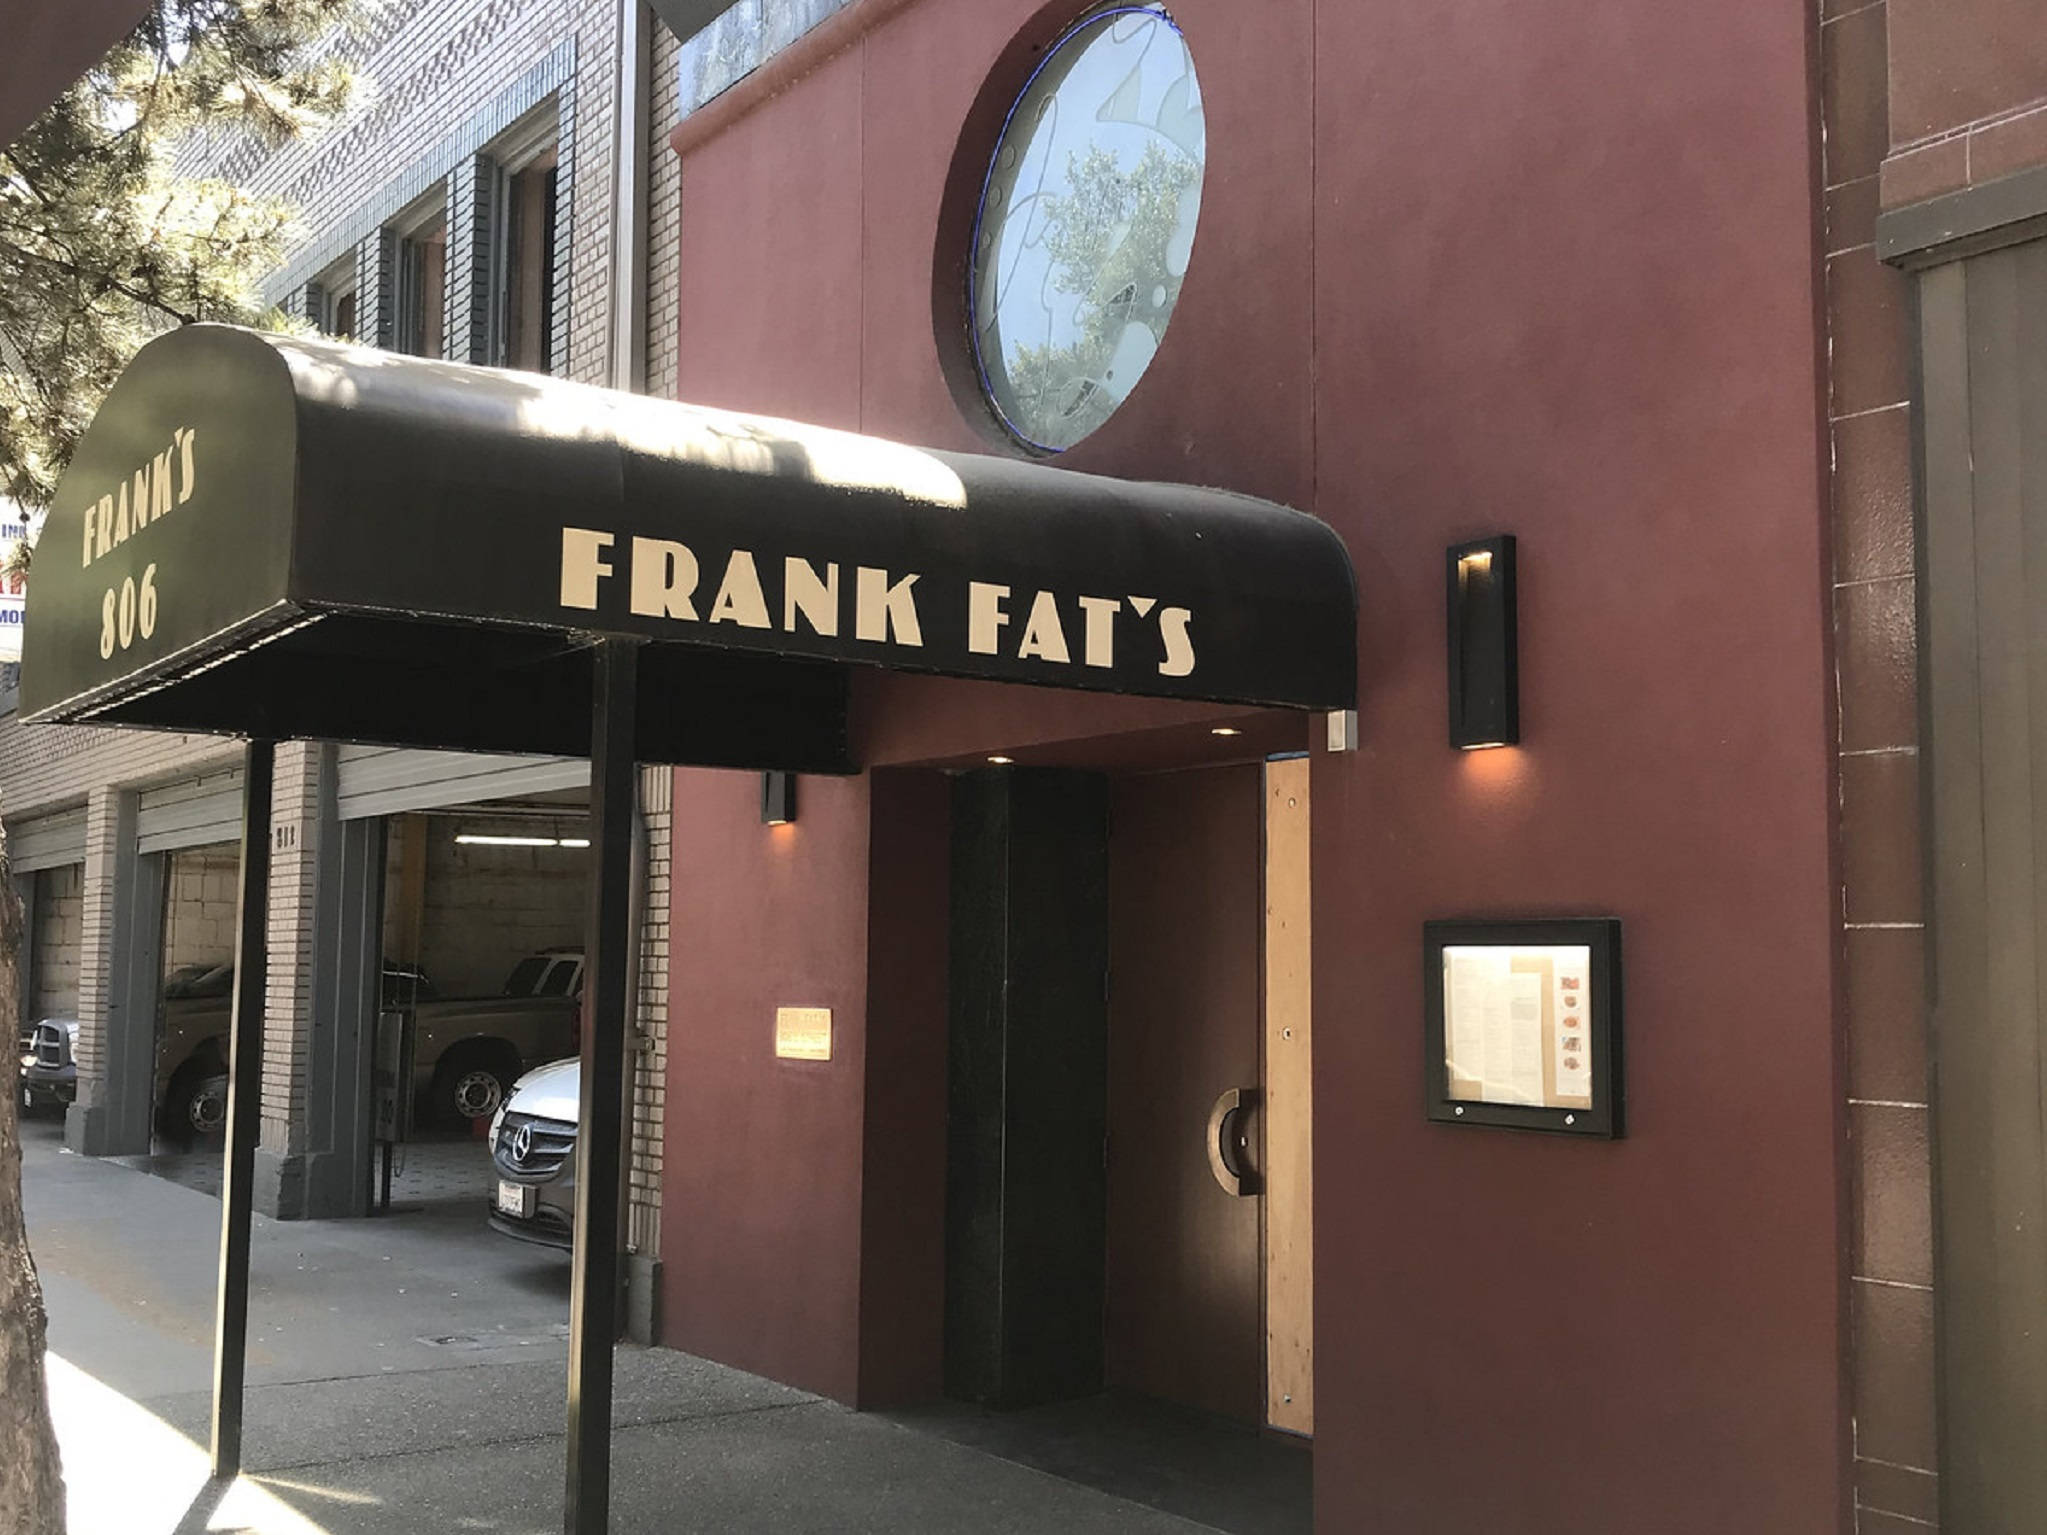 The awning and outside of Frank Fat's